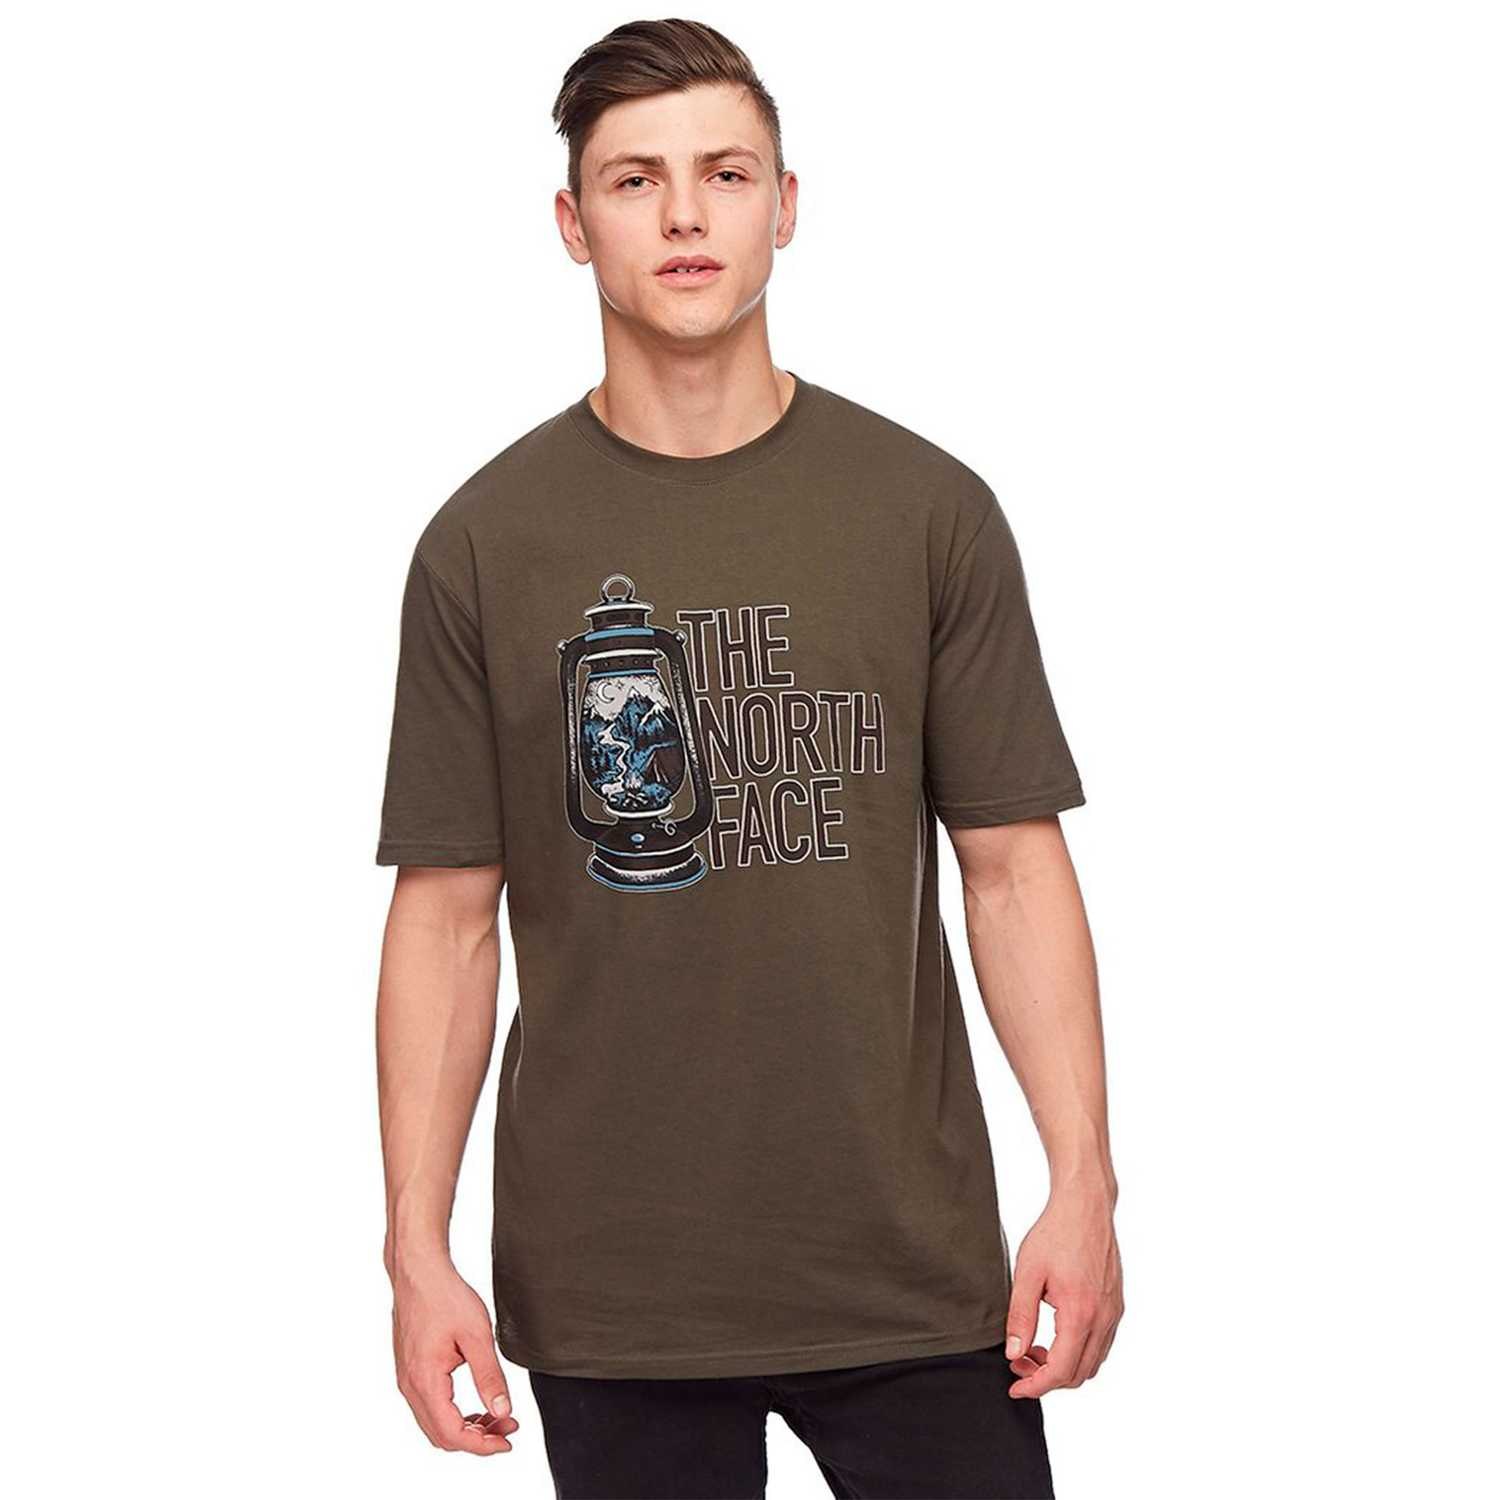 Polo de Hombre The North Face Verde m s/s essentials tee